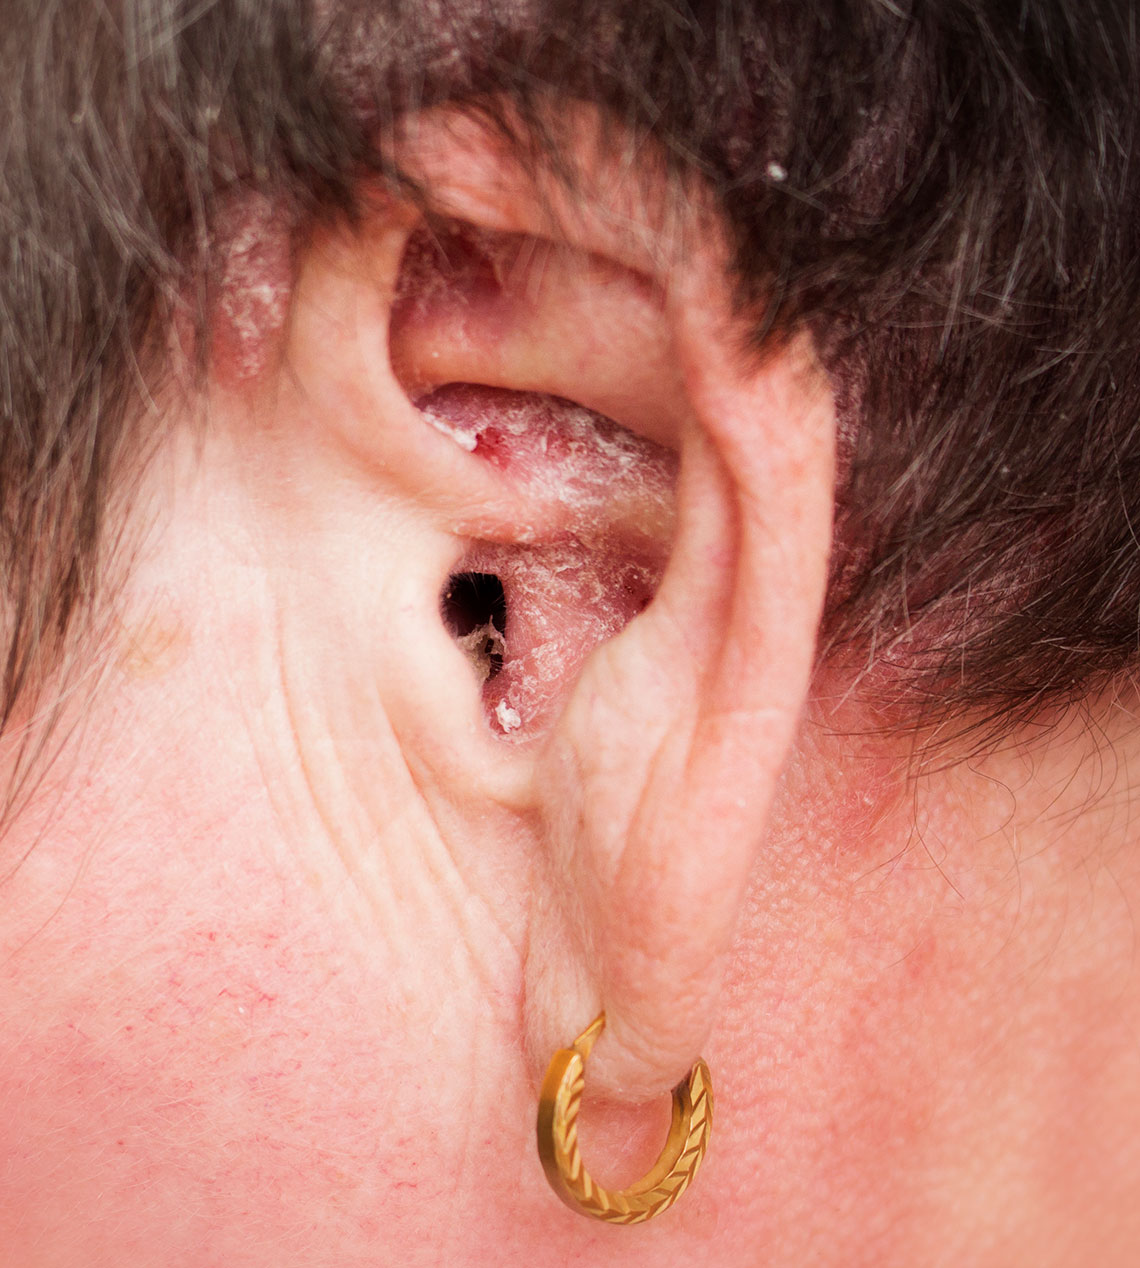 Ear Problems: Psoriasis, Tinnitus, Earache, Ear Wax